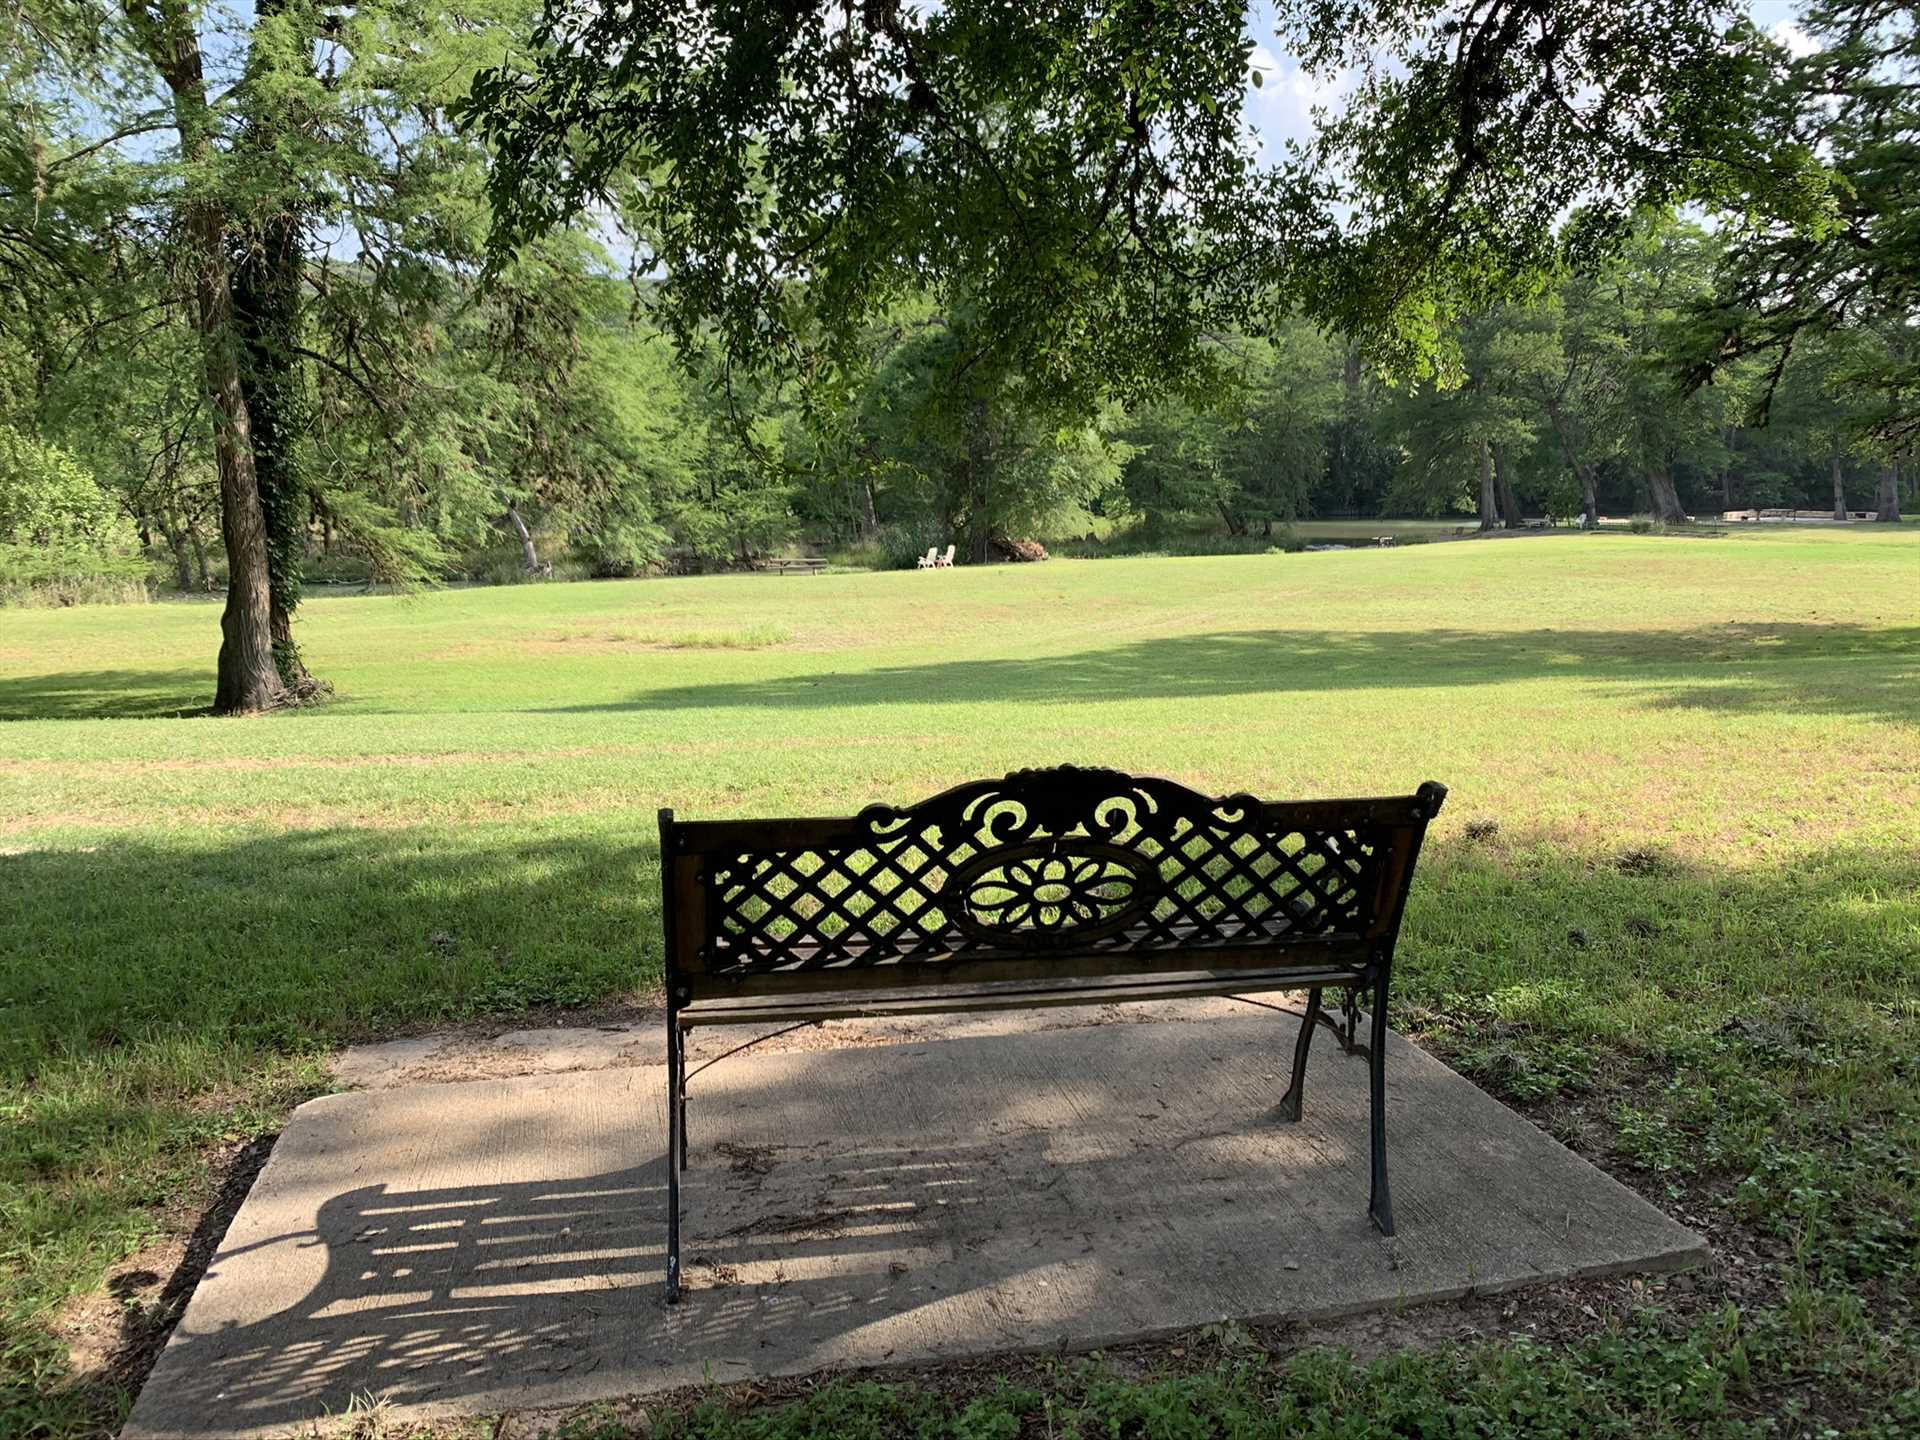 Have a relaxing and private sit-down in a shady roost under the trees!